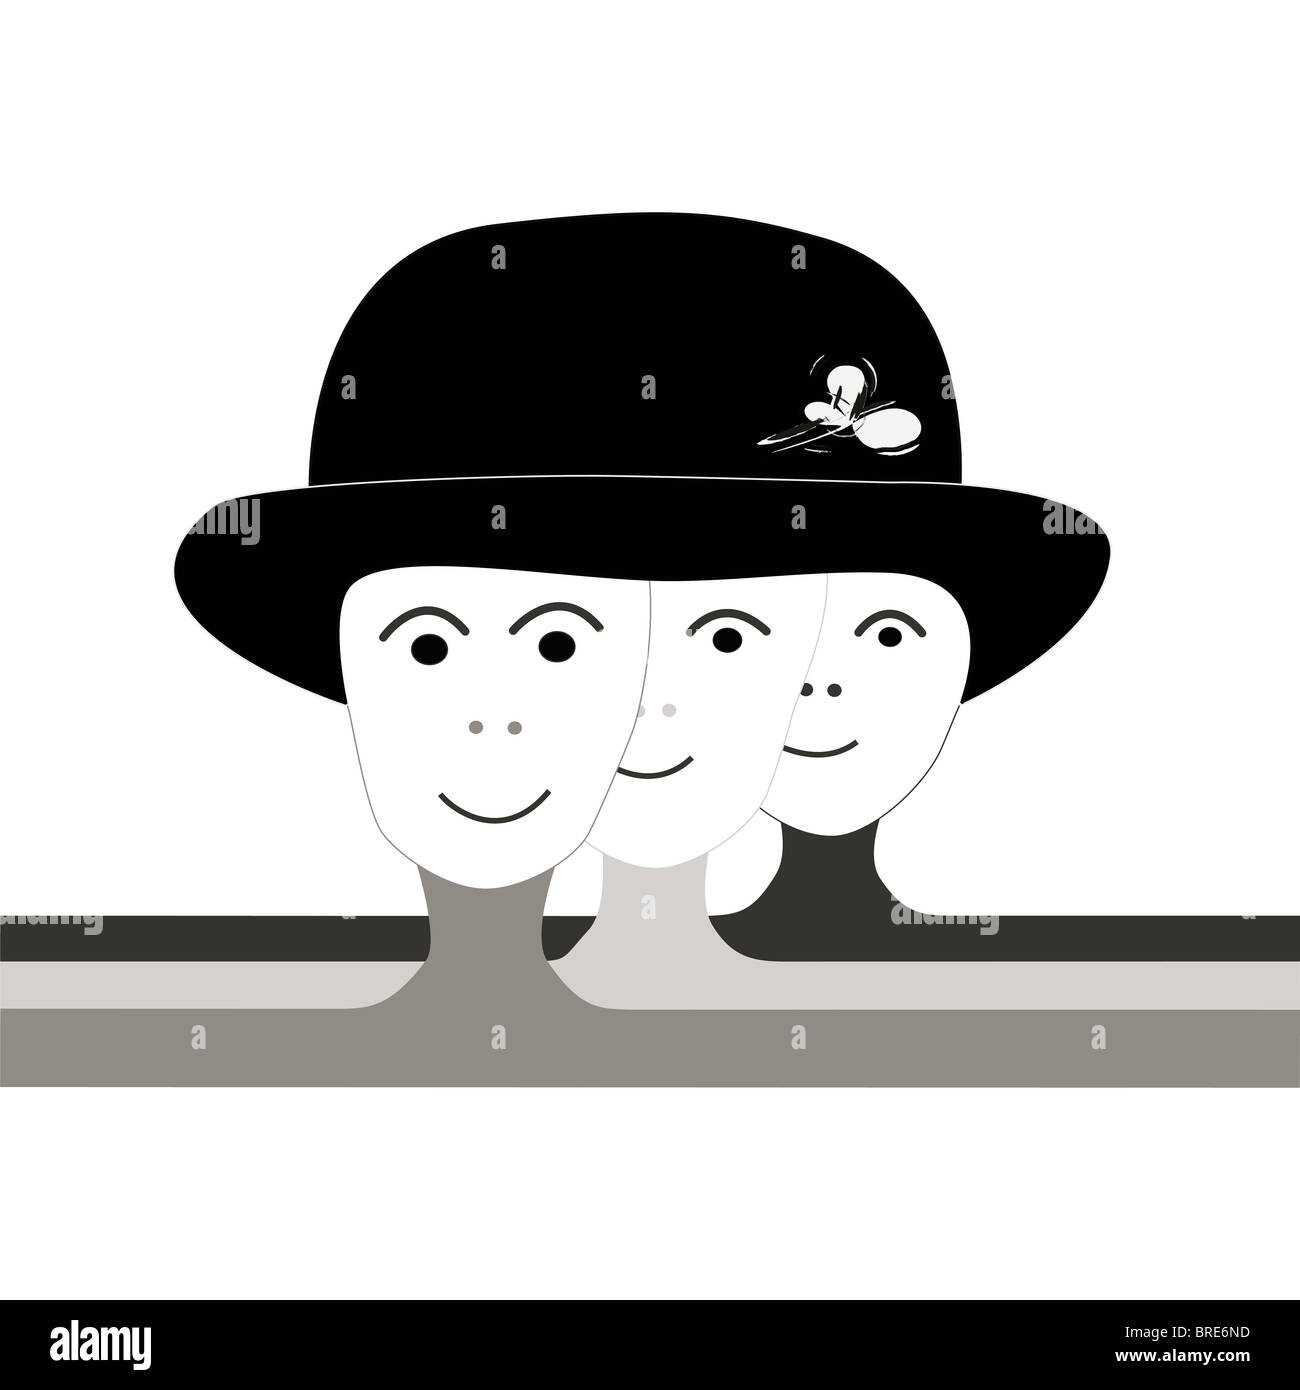 Under one hat, icon illustration in black and white of tree graphic personalities, in various shades of grey on - Stock Image